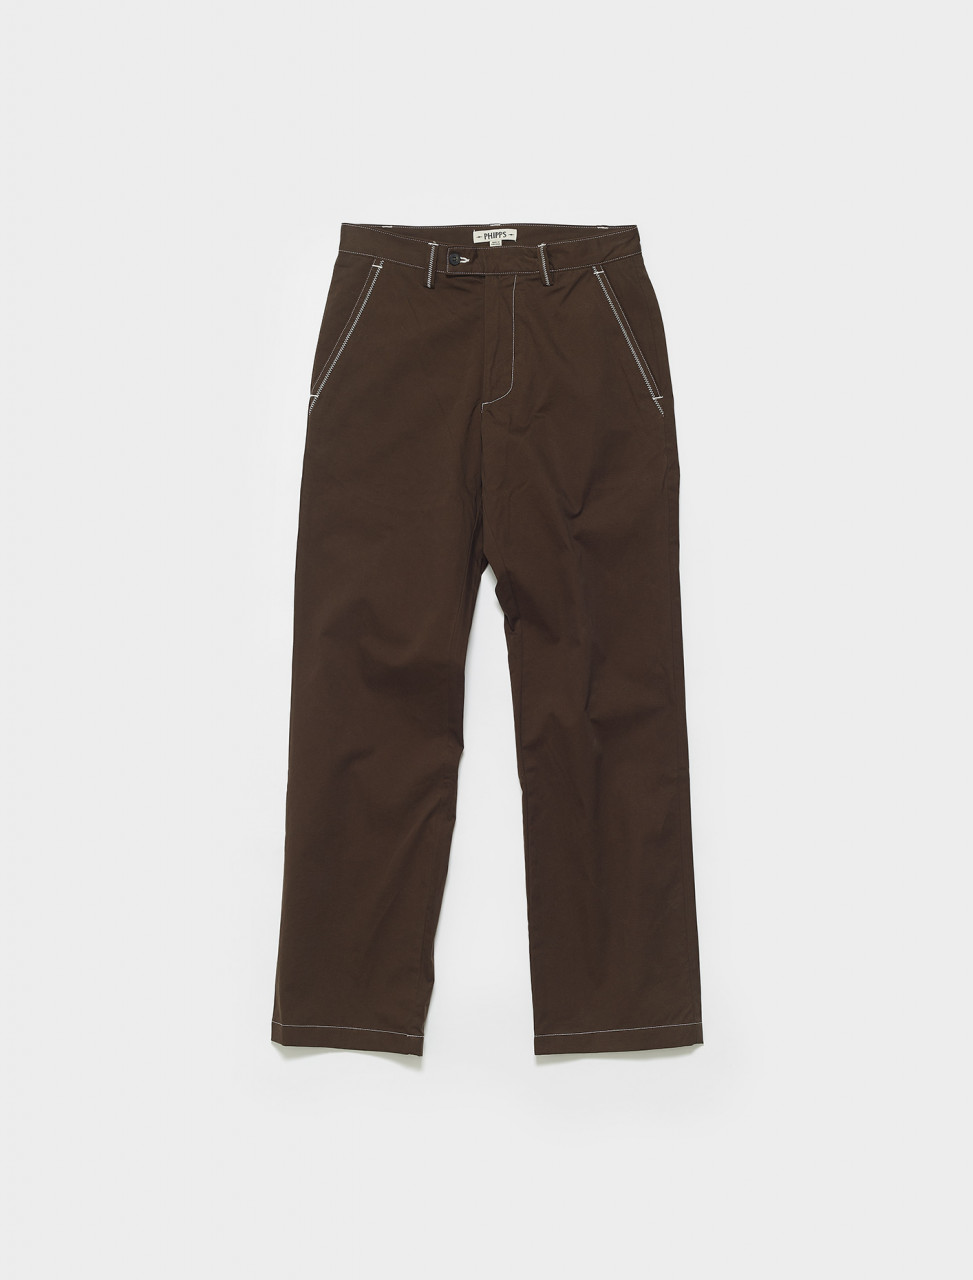 PHSS21-P22-C003 PHIPPS DAD TROUSERS BLACK BEAR